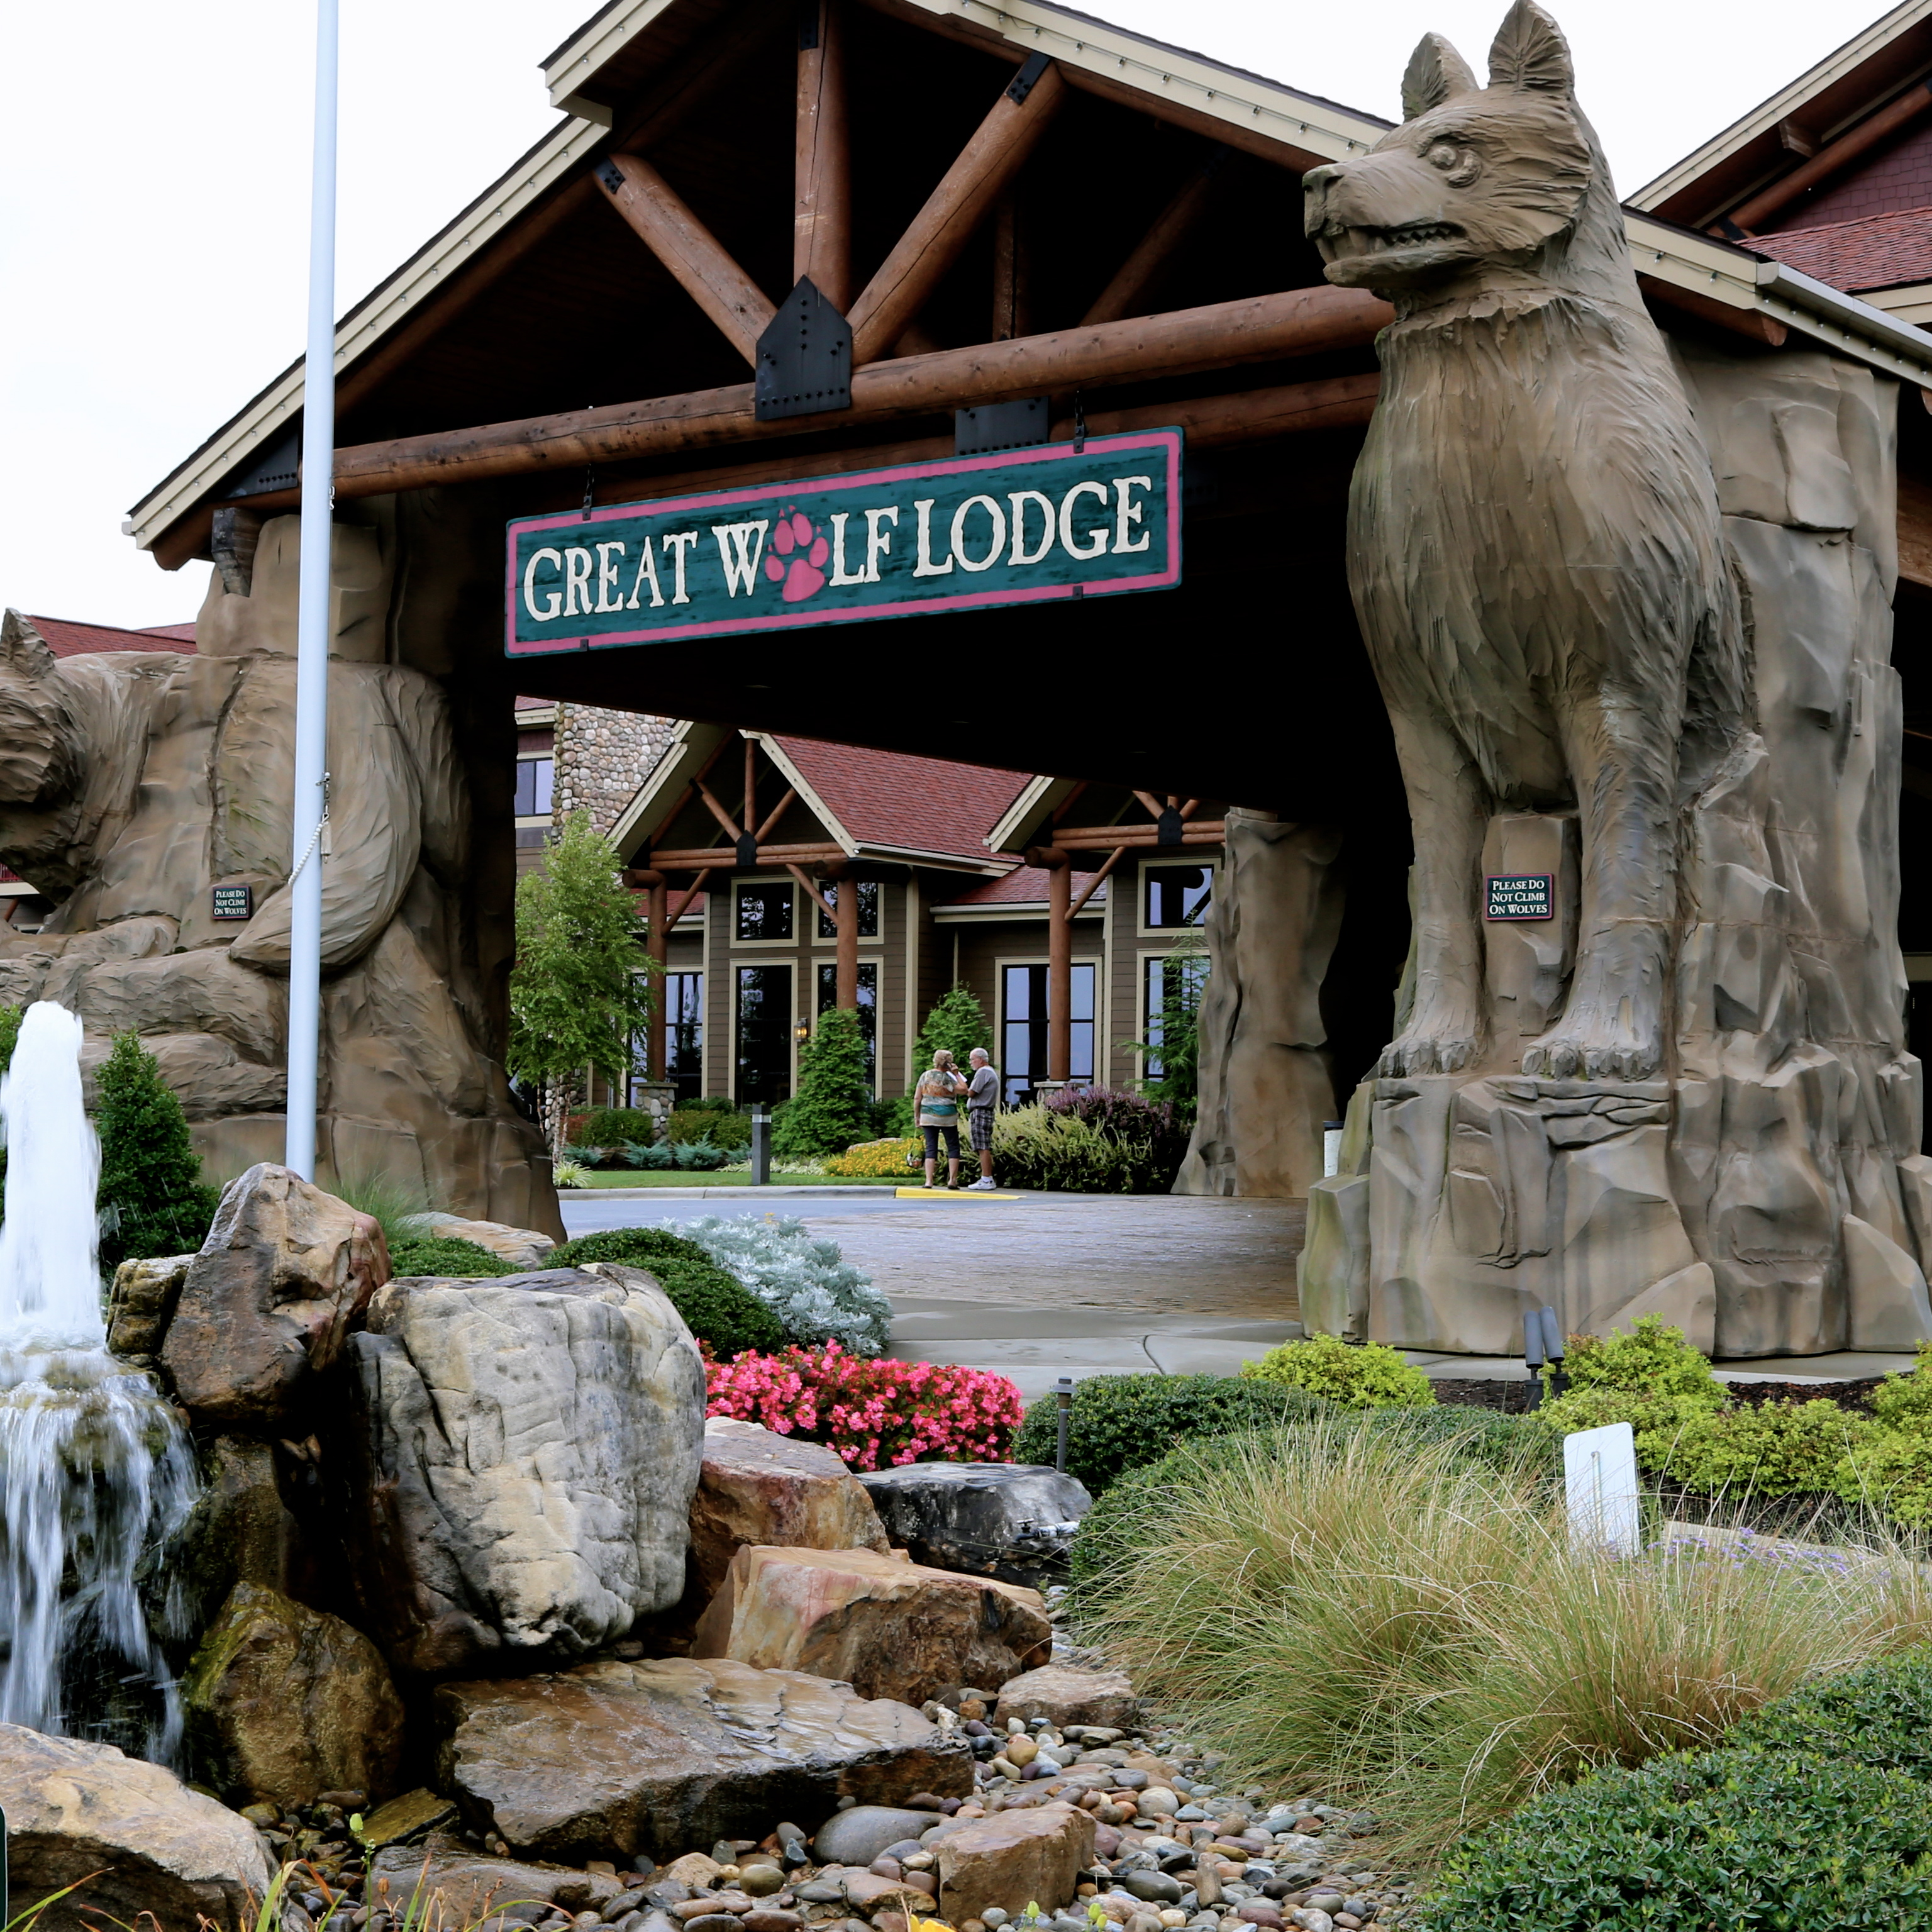 5 Reasons Why I Wouldnt Return To The Great Wolf Lodge  US City Traveler